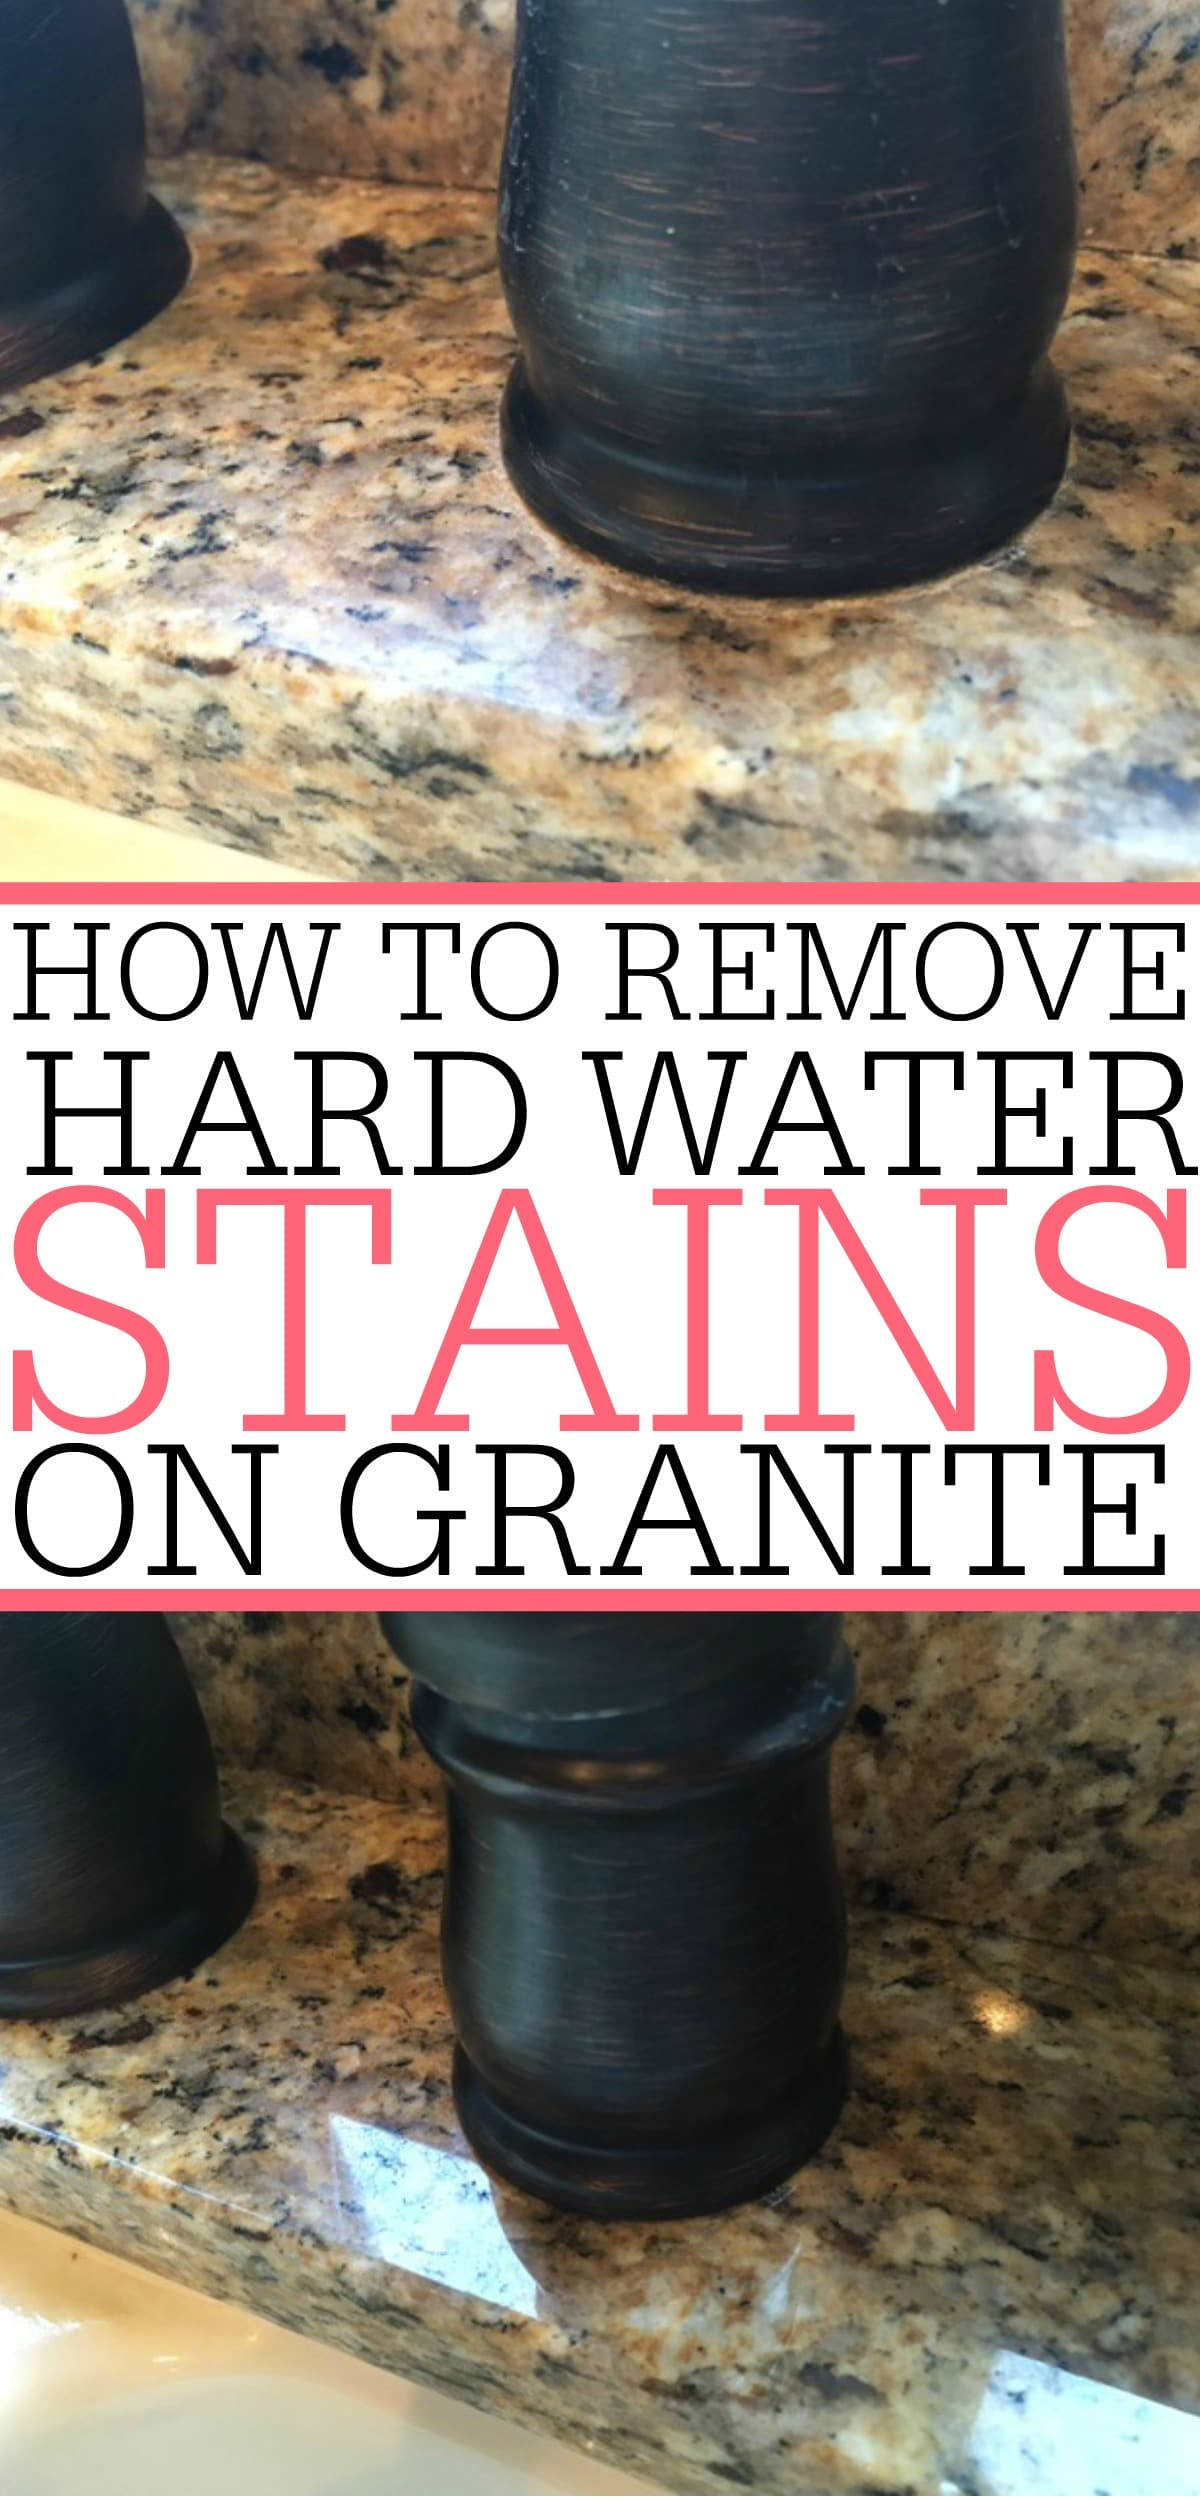 How To Remove A Water Stain On Granite - Frugally Blonde on Black Granite Stain  id=20398